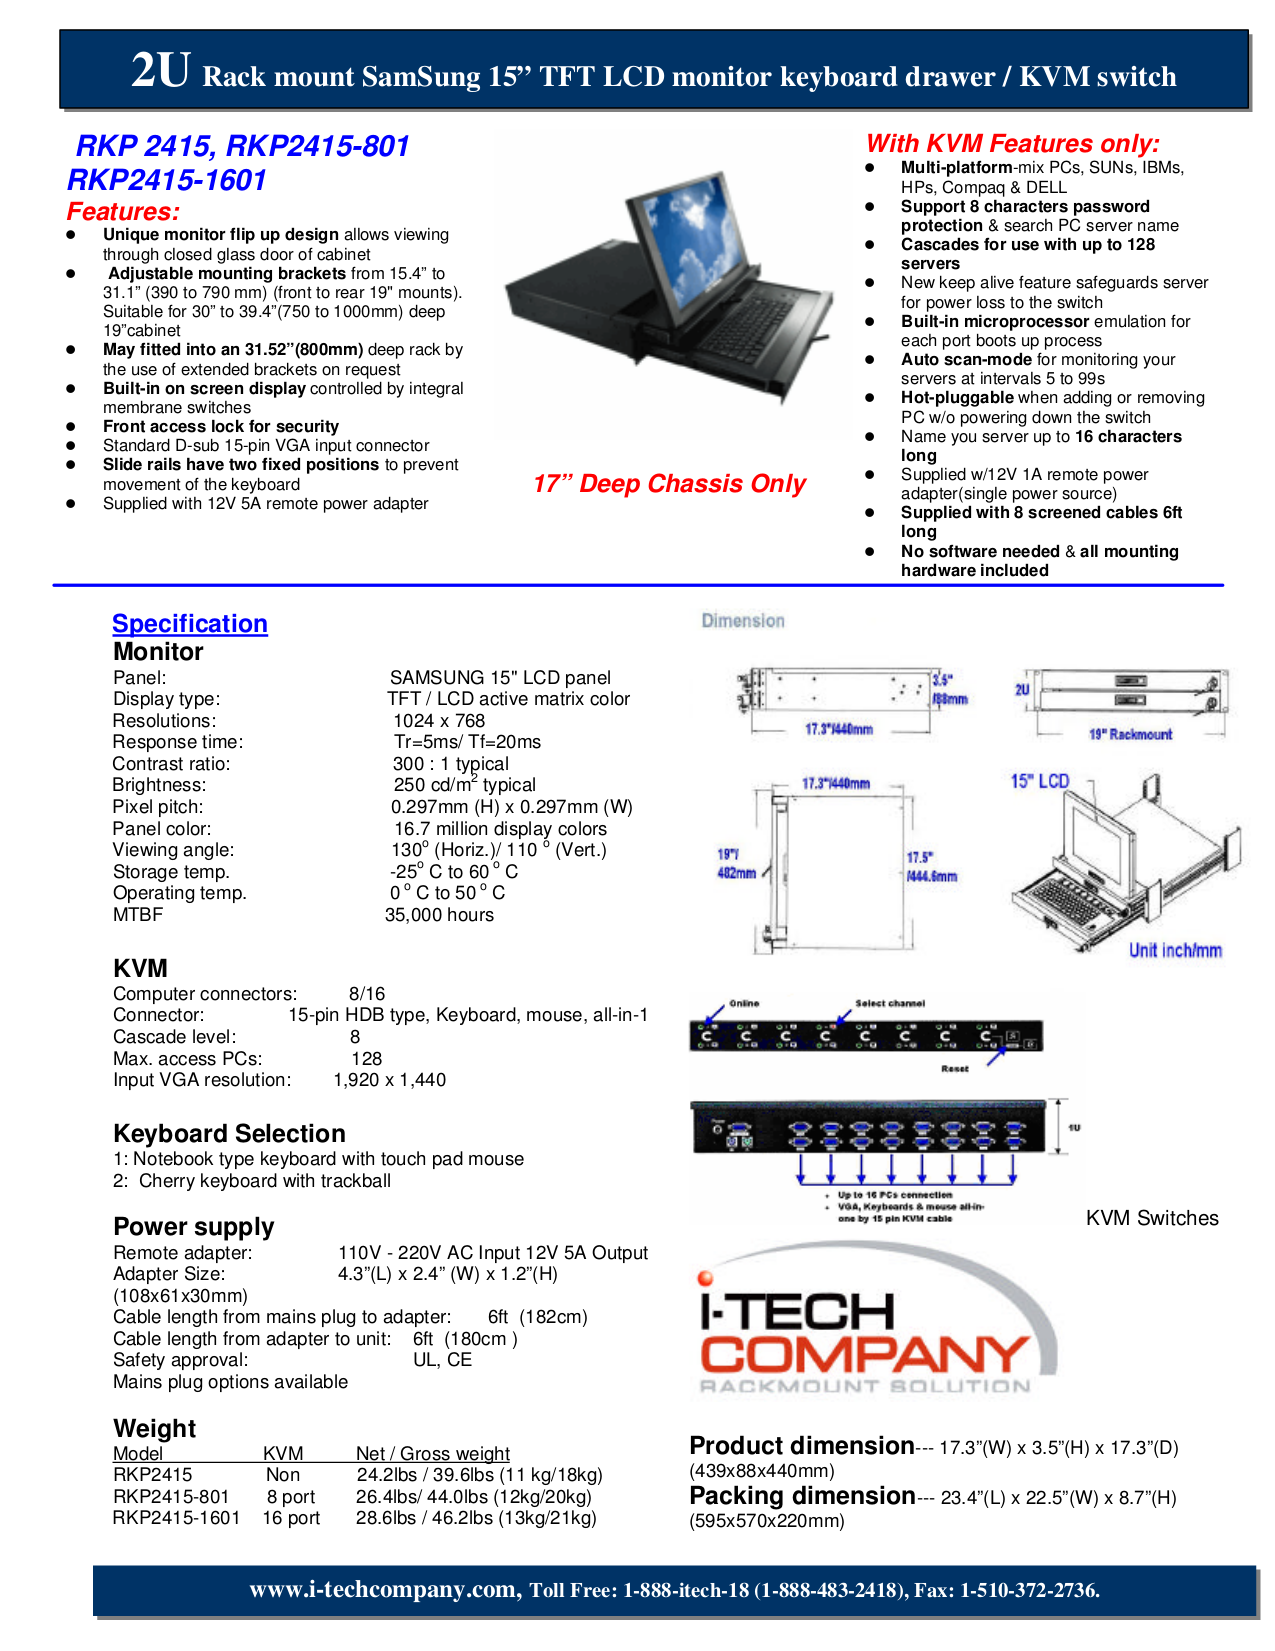 pdf for I-Tech Other RKP2415- 801 Keyboard Drawers manual